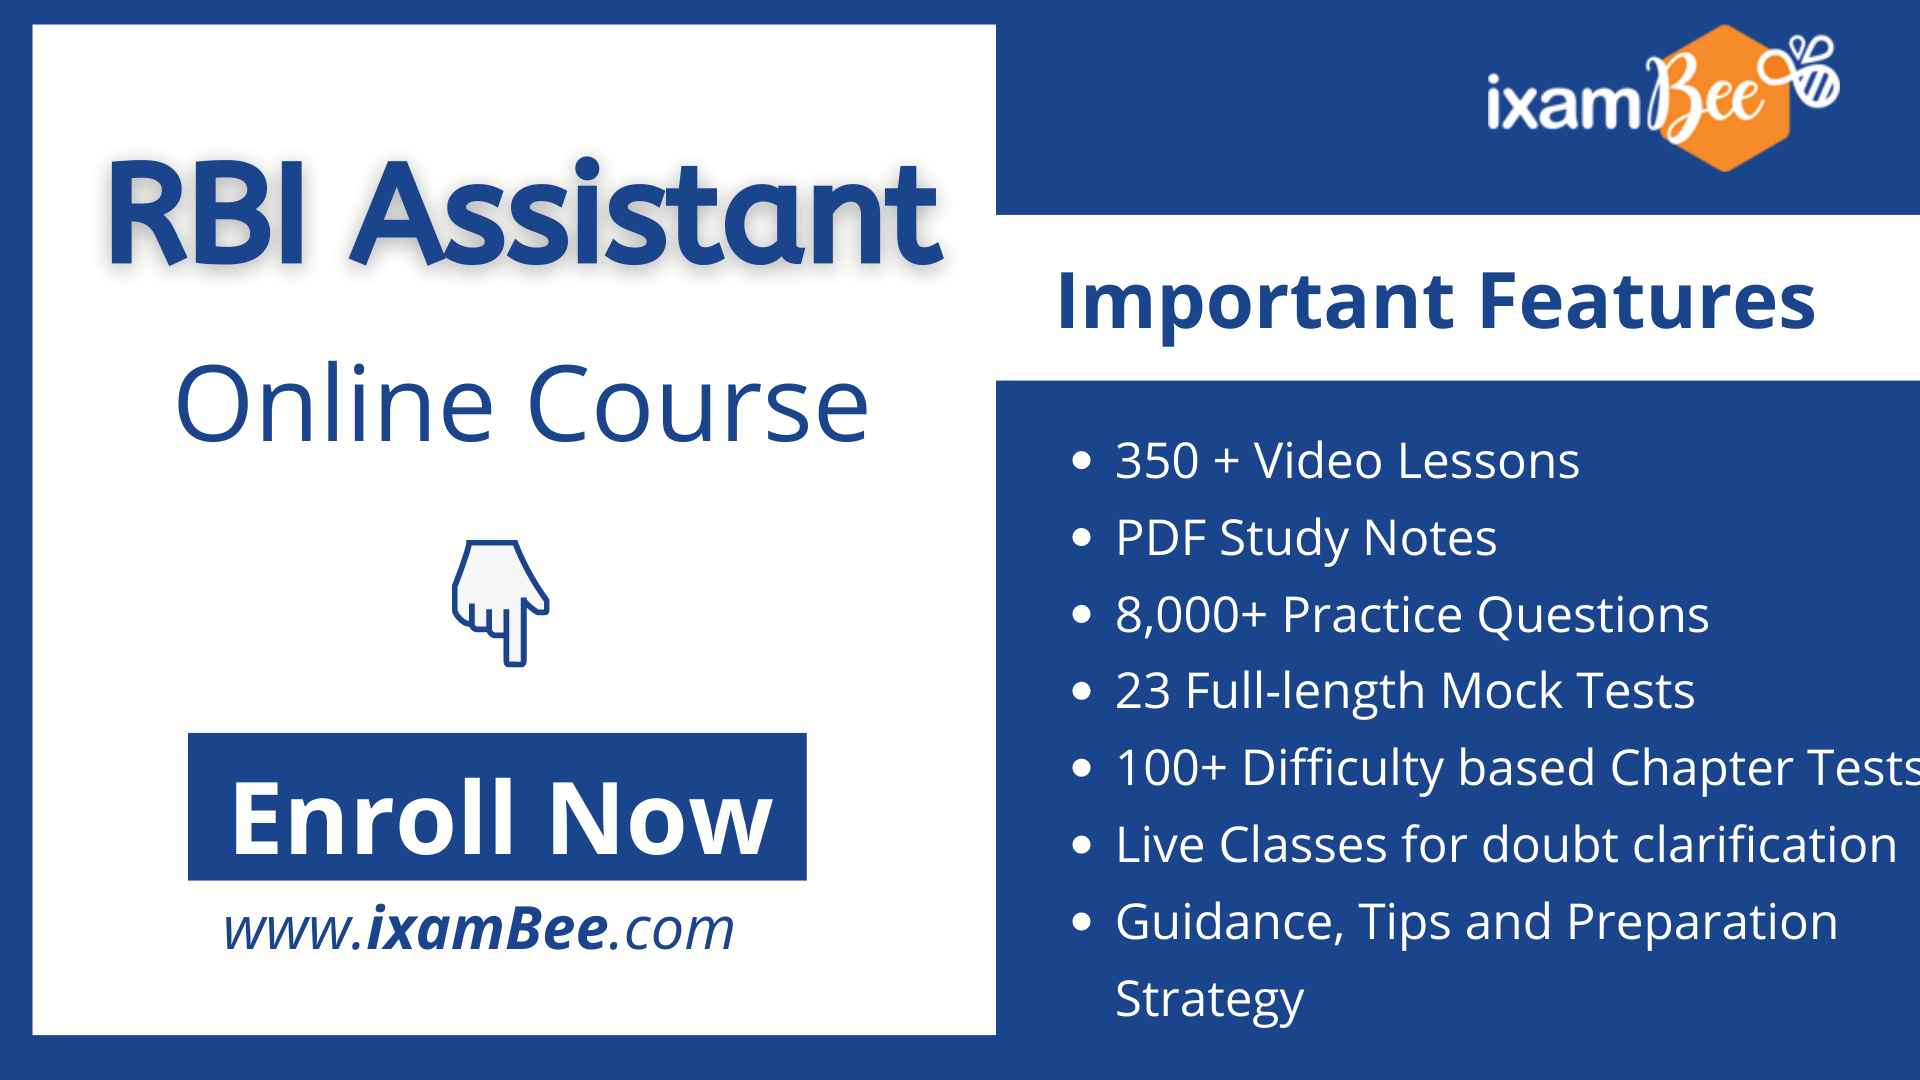 rbi assistant online course